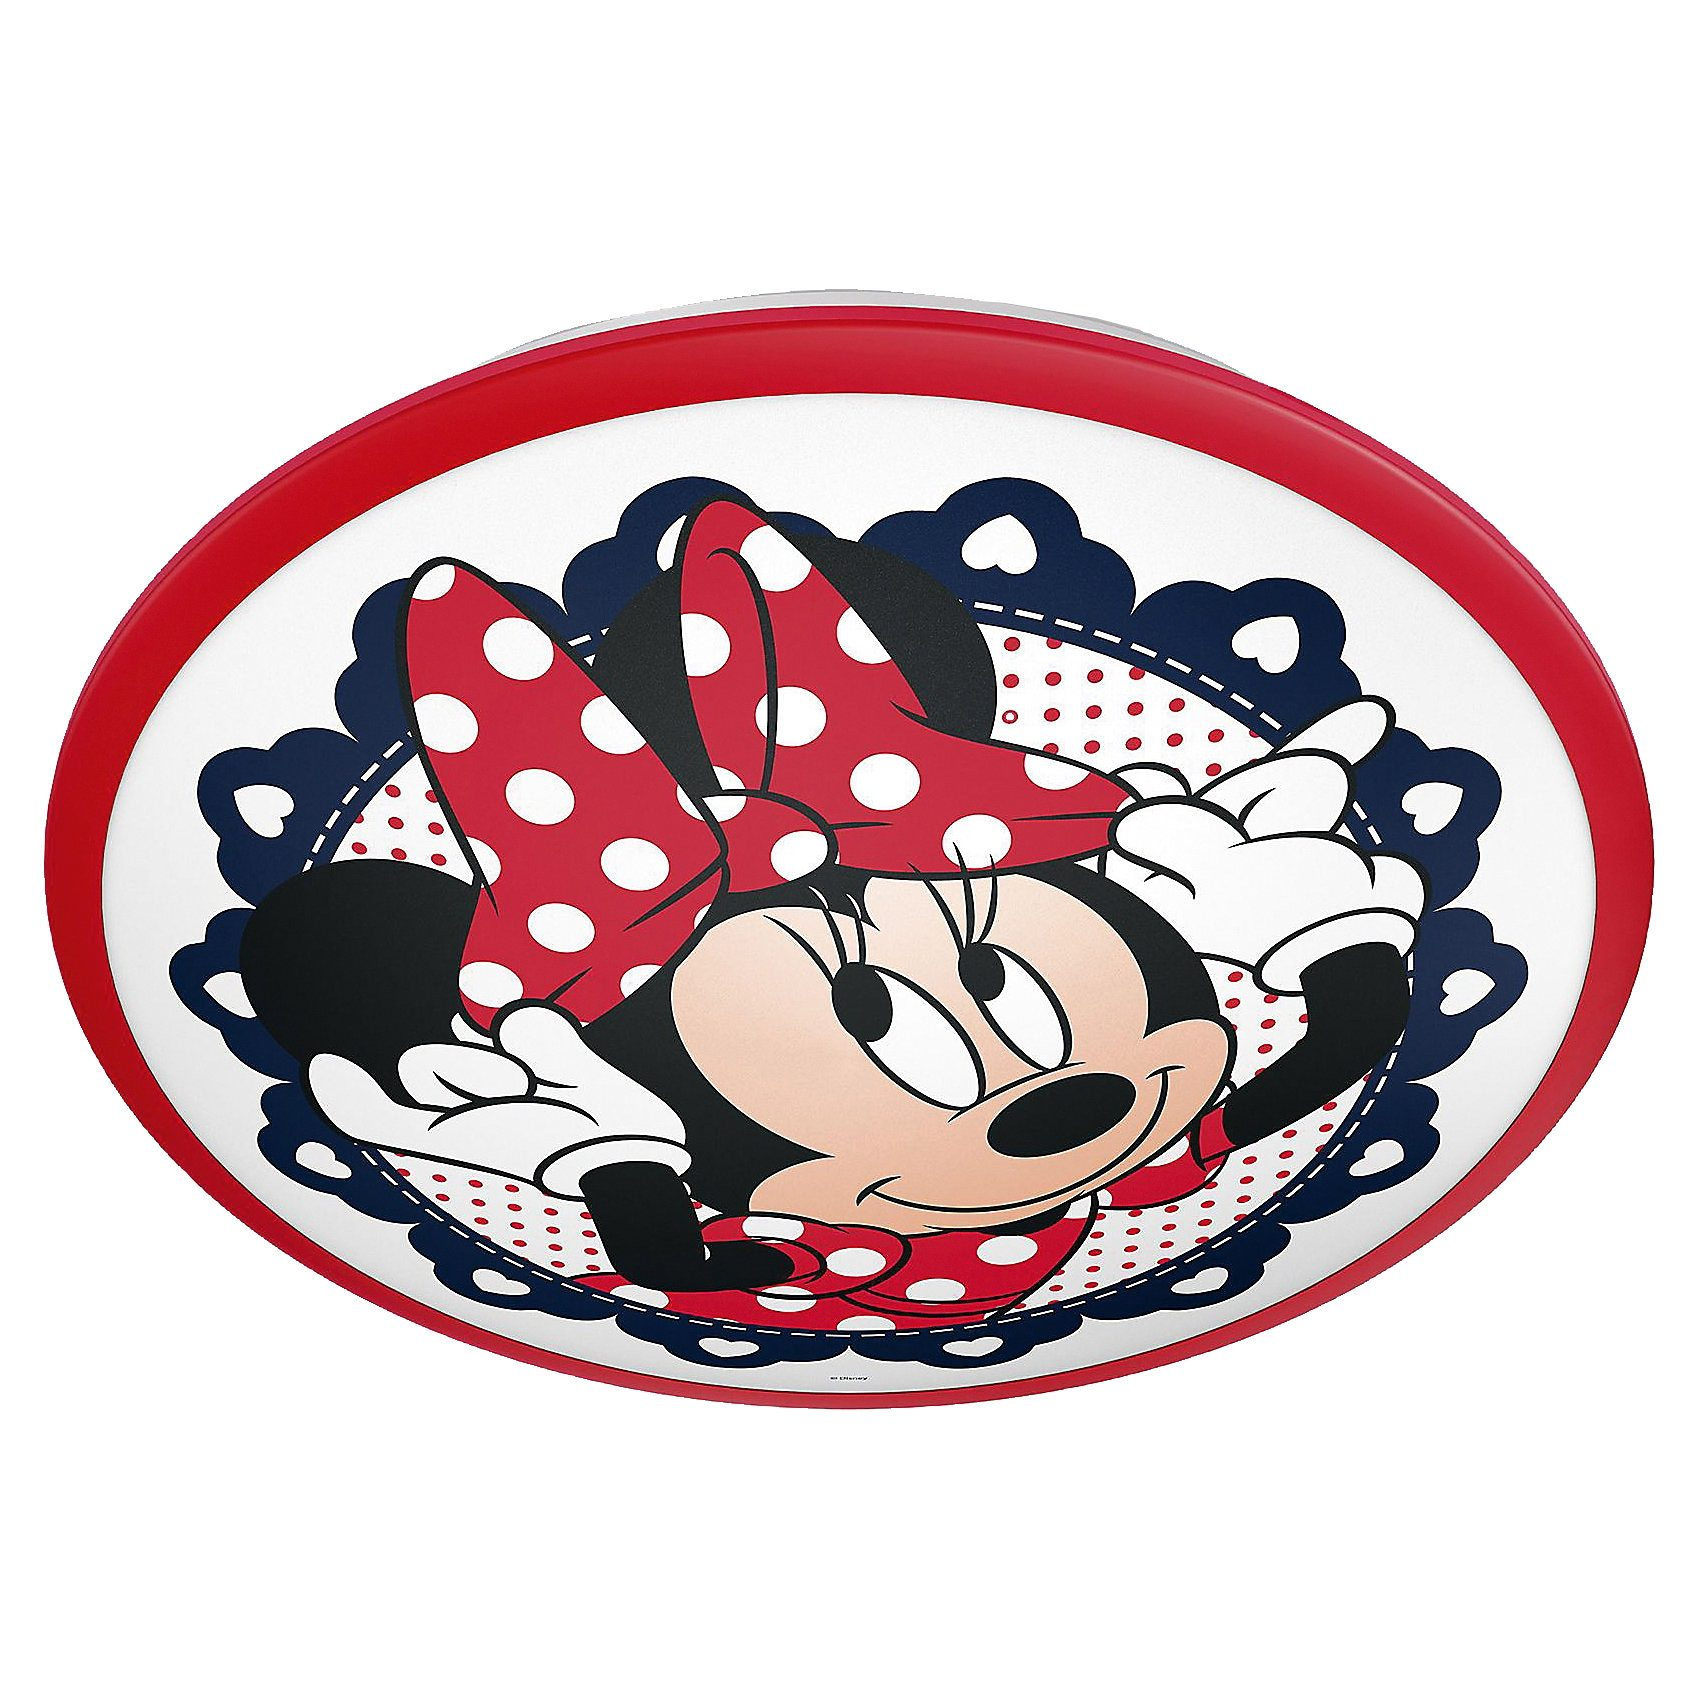 Philips Lighting Wand- und Deckenlampe, Minnie Mouse, LED